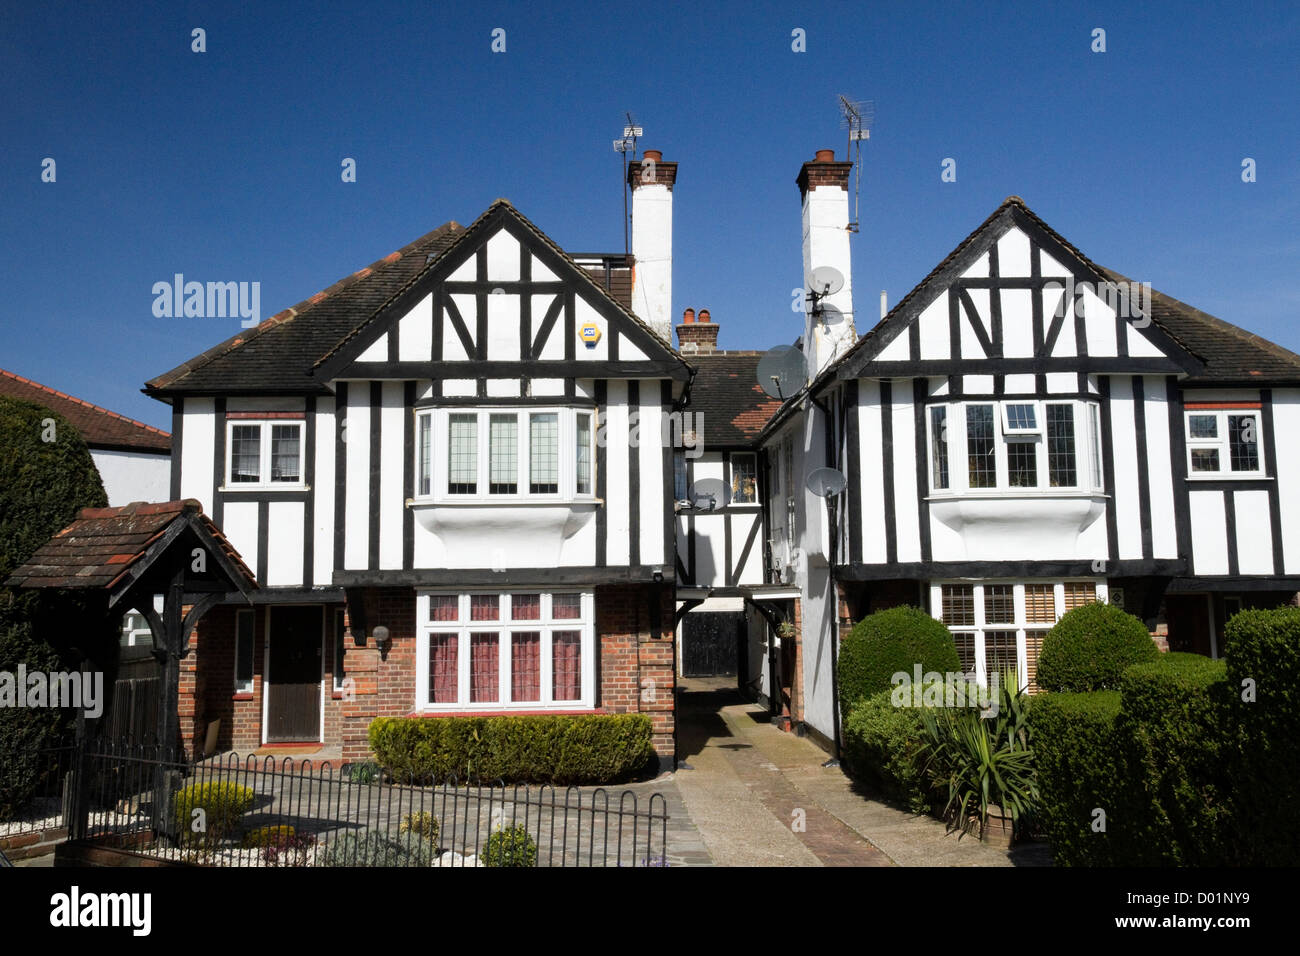 houses in Mock Tudor style in the suburb of Finchley London England - Stock Image